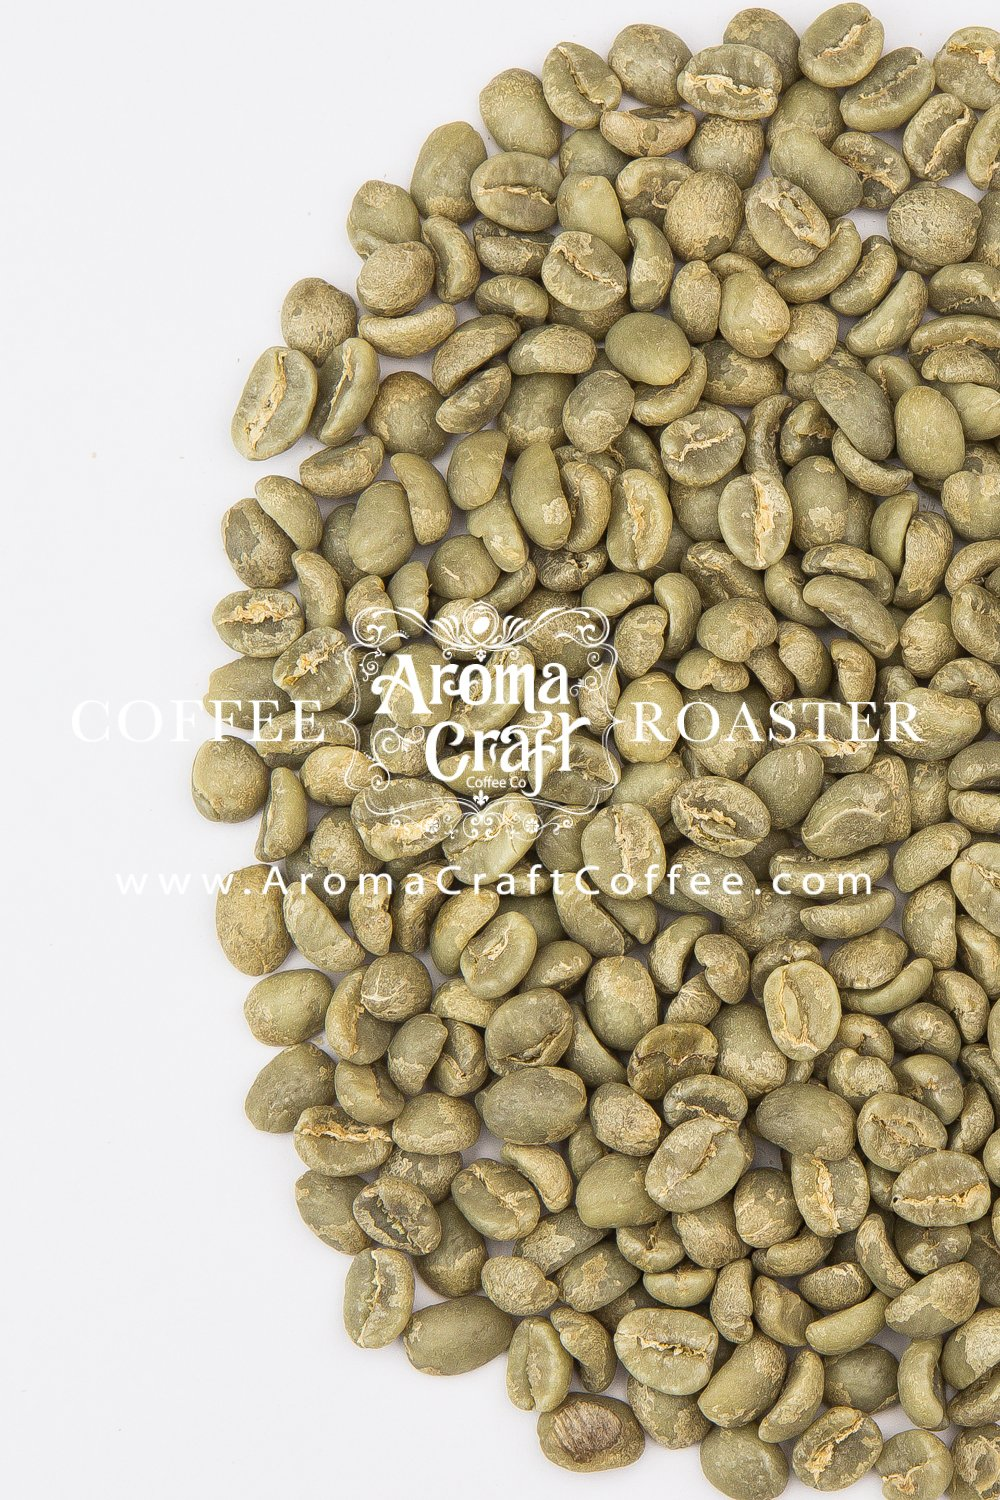 Kenya AA Washed Unroasted Green Coffee Beans (10 LB) by Aroma Craft Coffee (Image #2)